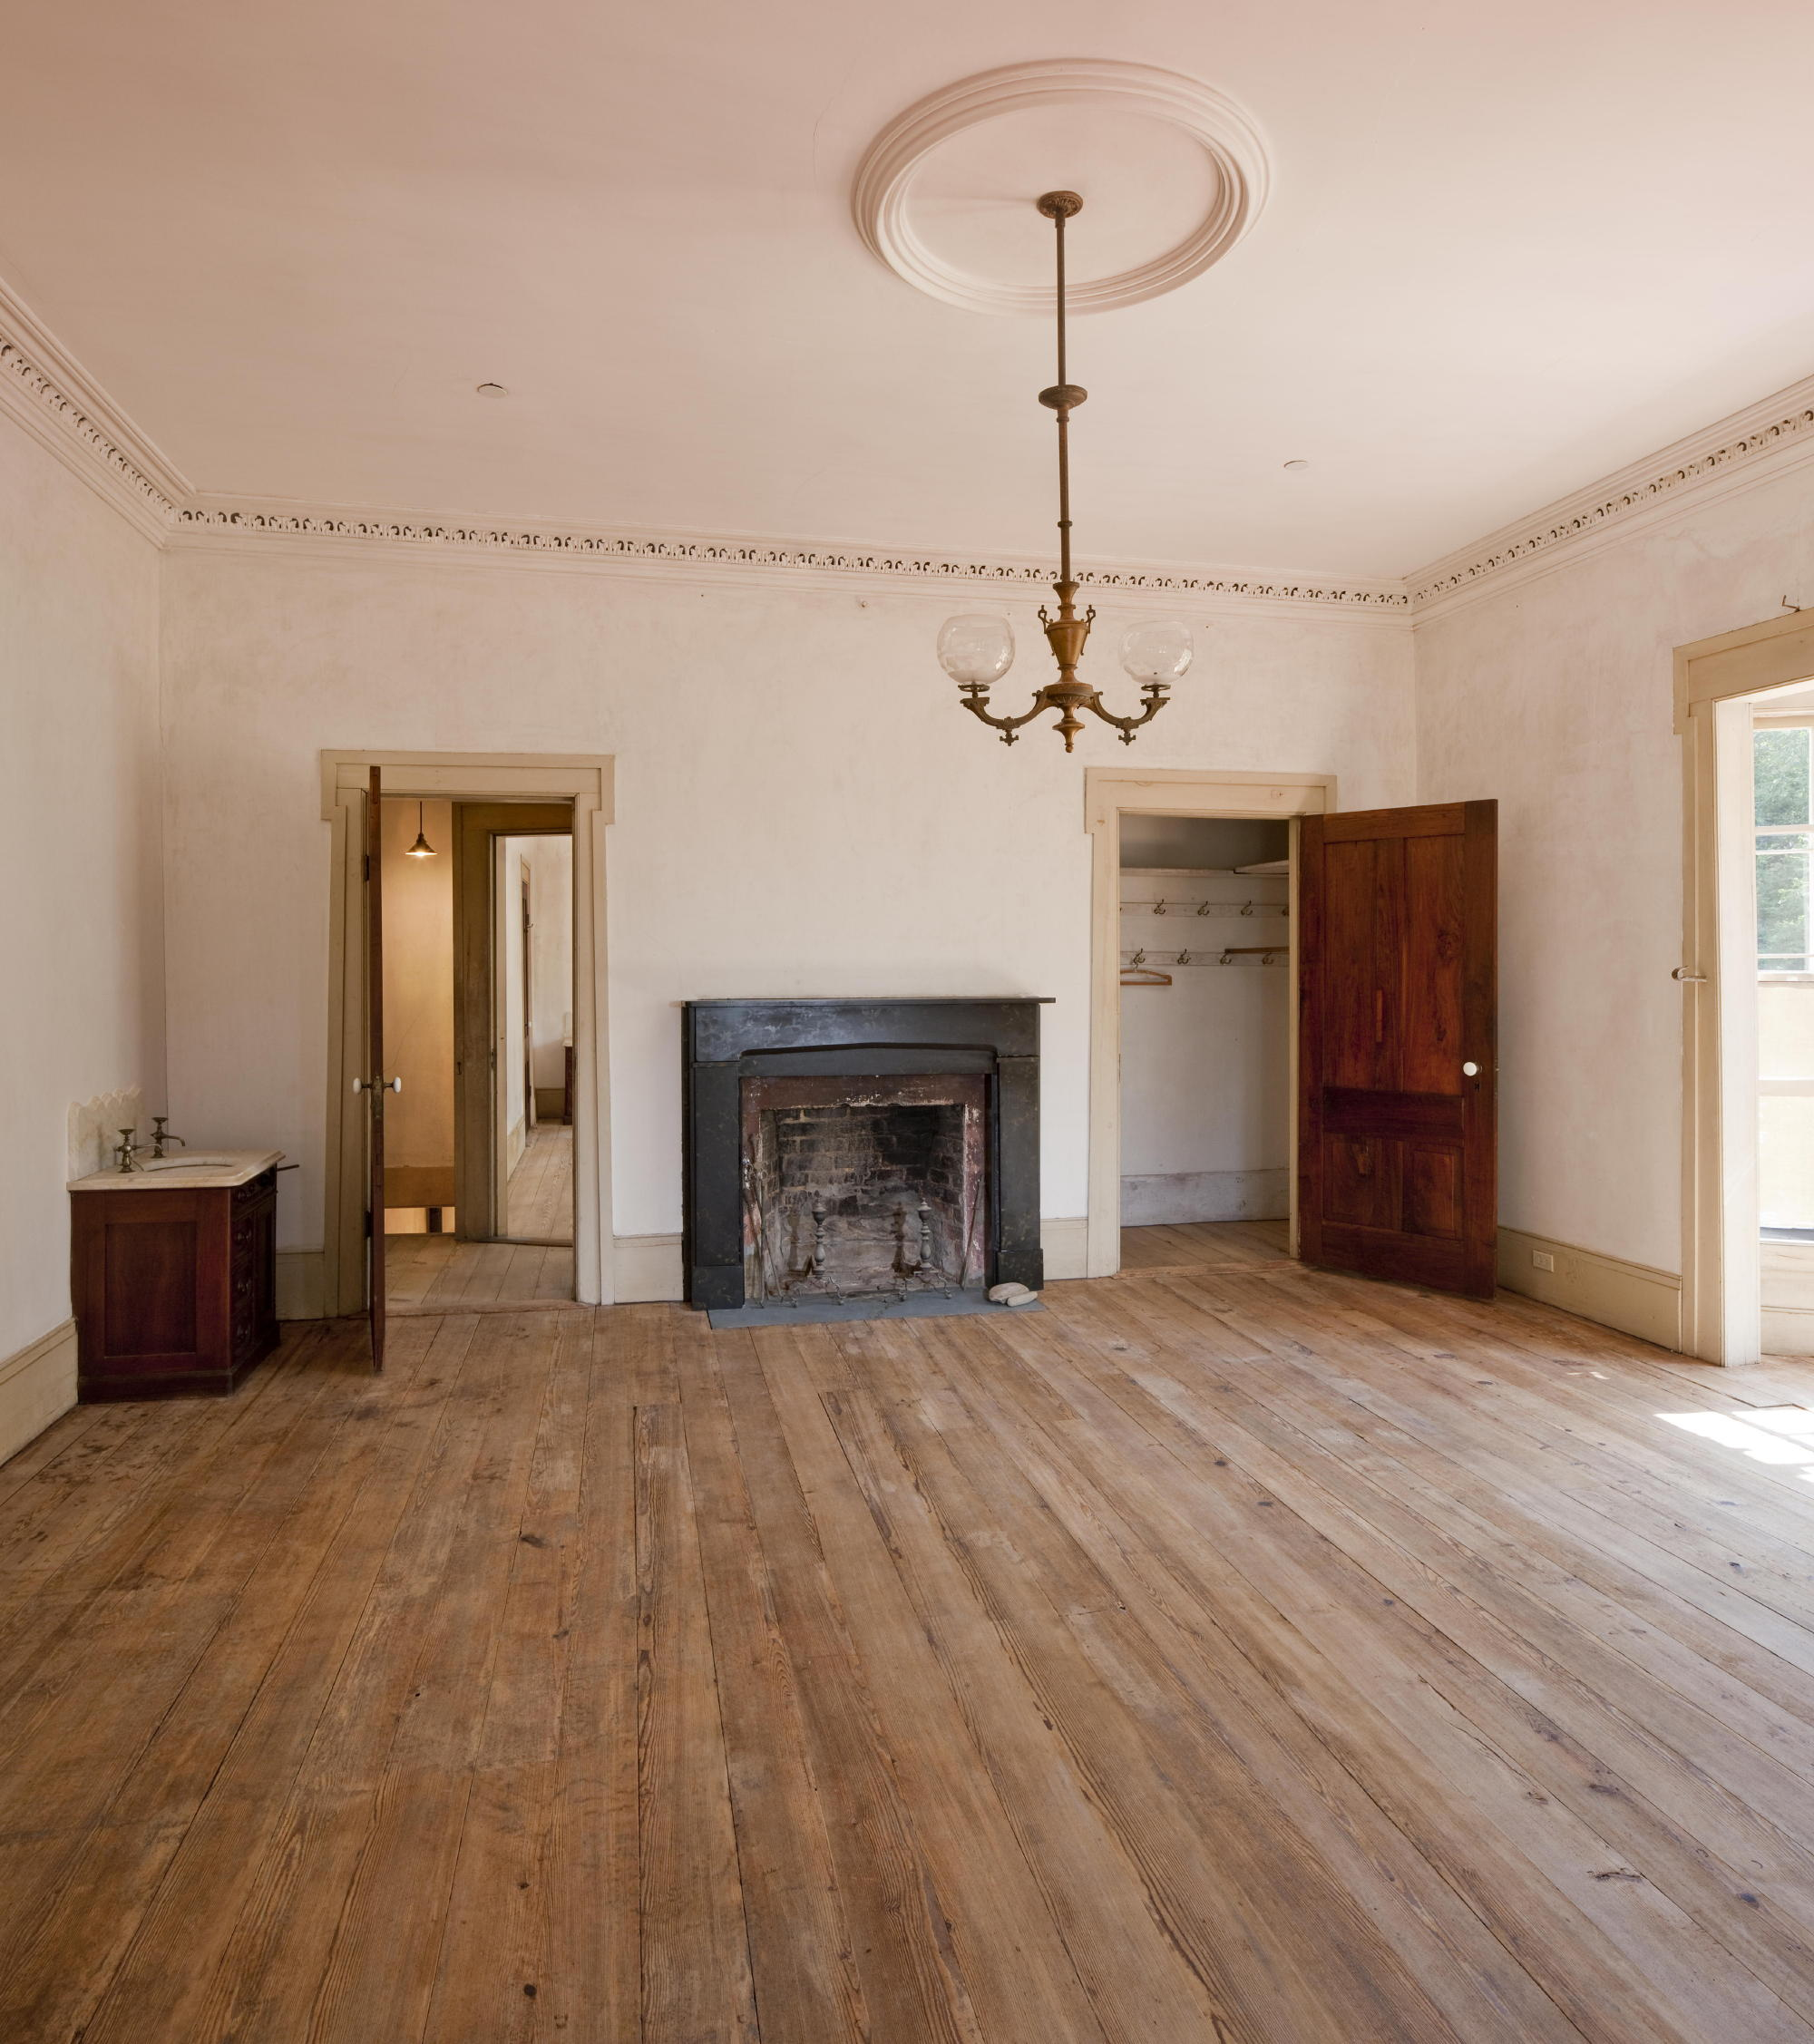 The farmhouse at Hardman Farm retains its original gas lighting fixtures (modified only minimally for partial electrification in the early 20th century), and original and early 20th century plumbing fixtures. The knob and skeleton key locks on the bedroom and parlor doors were restored. Photo: c Jonathan Hillyer / Atlanta